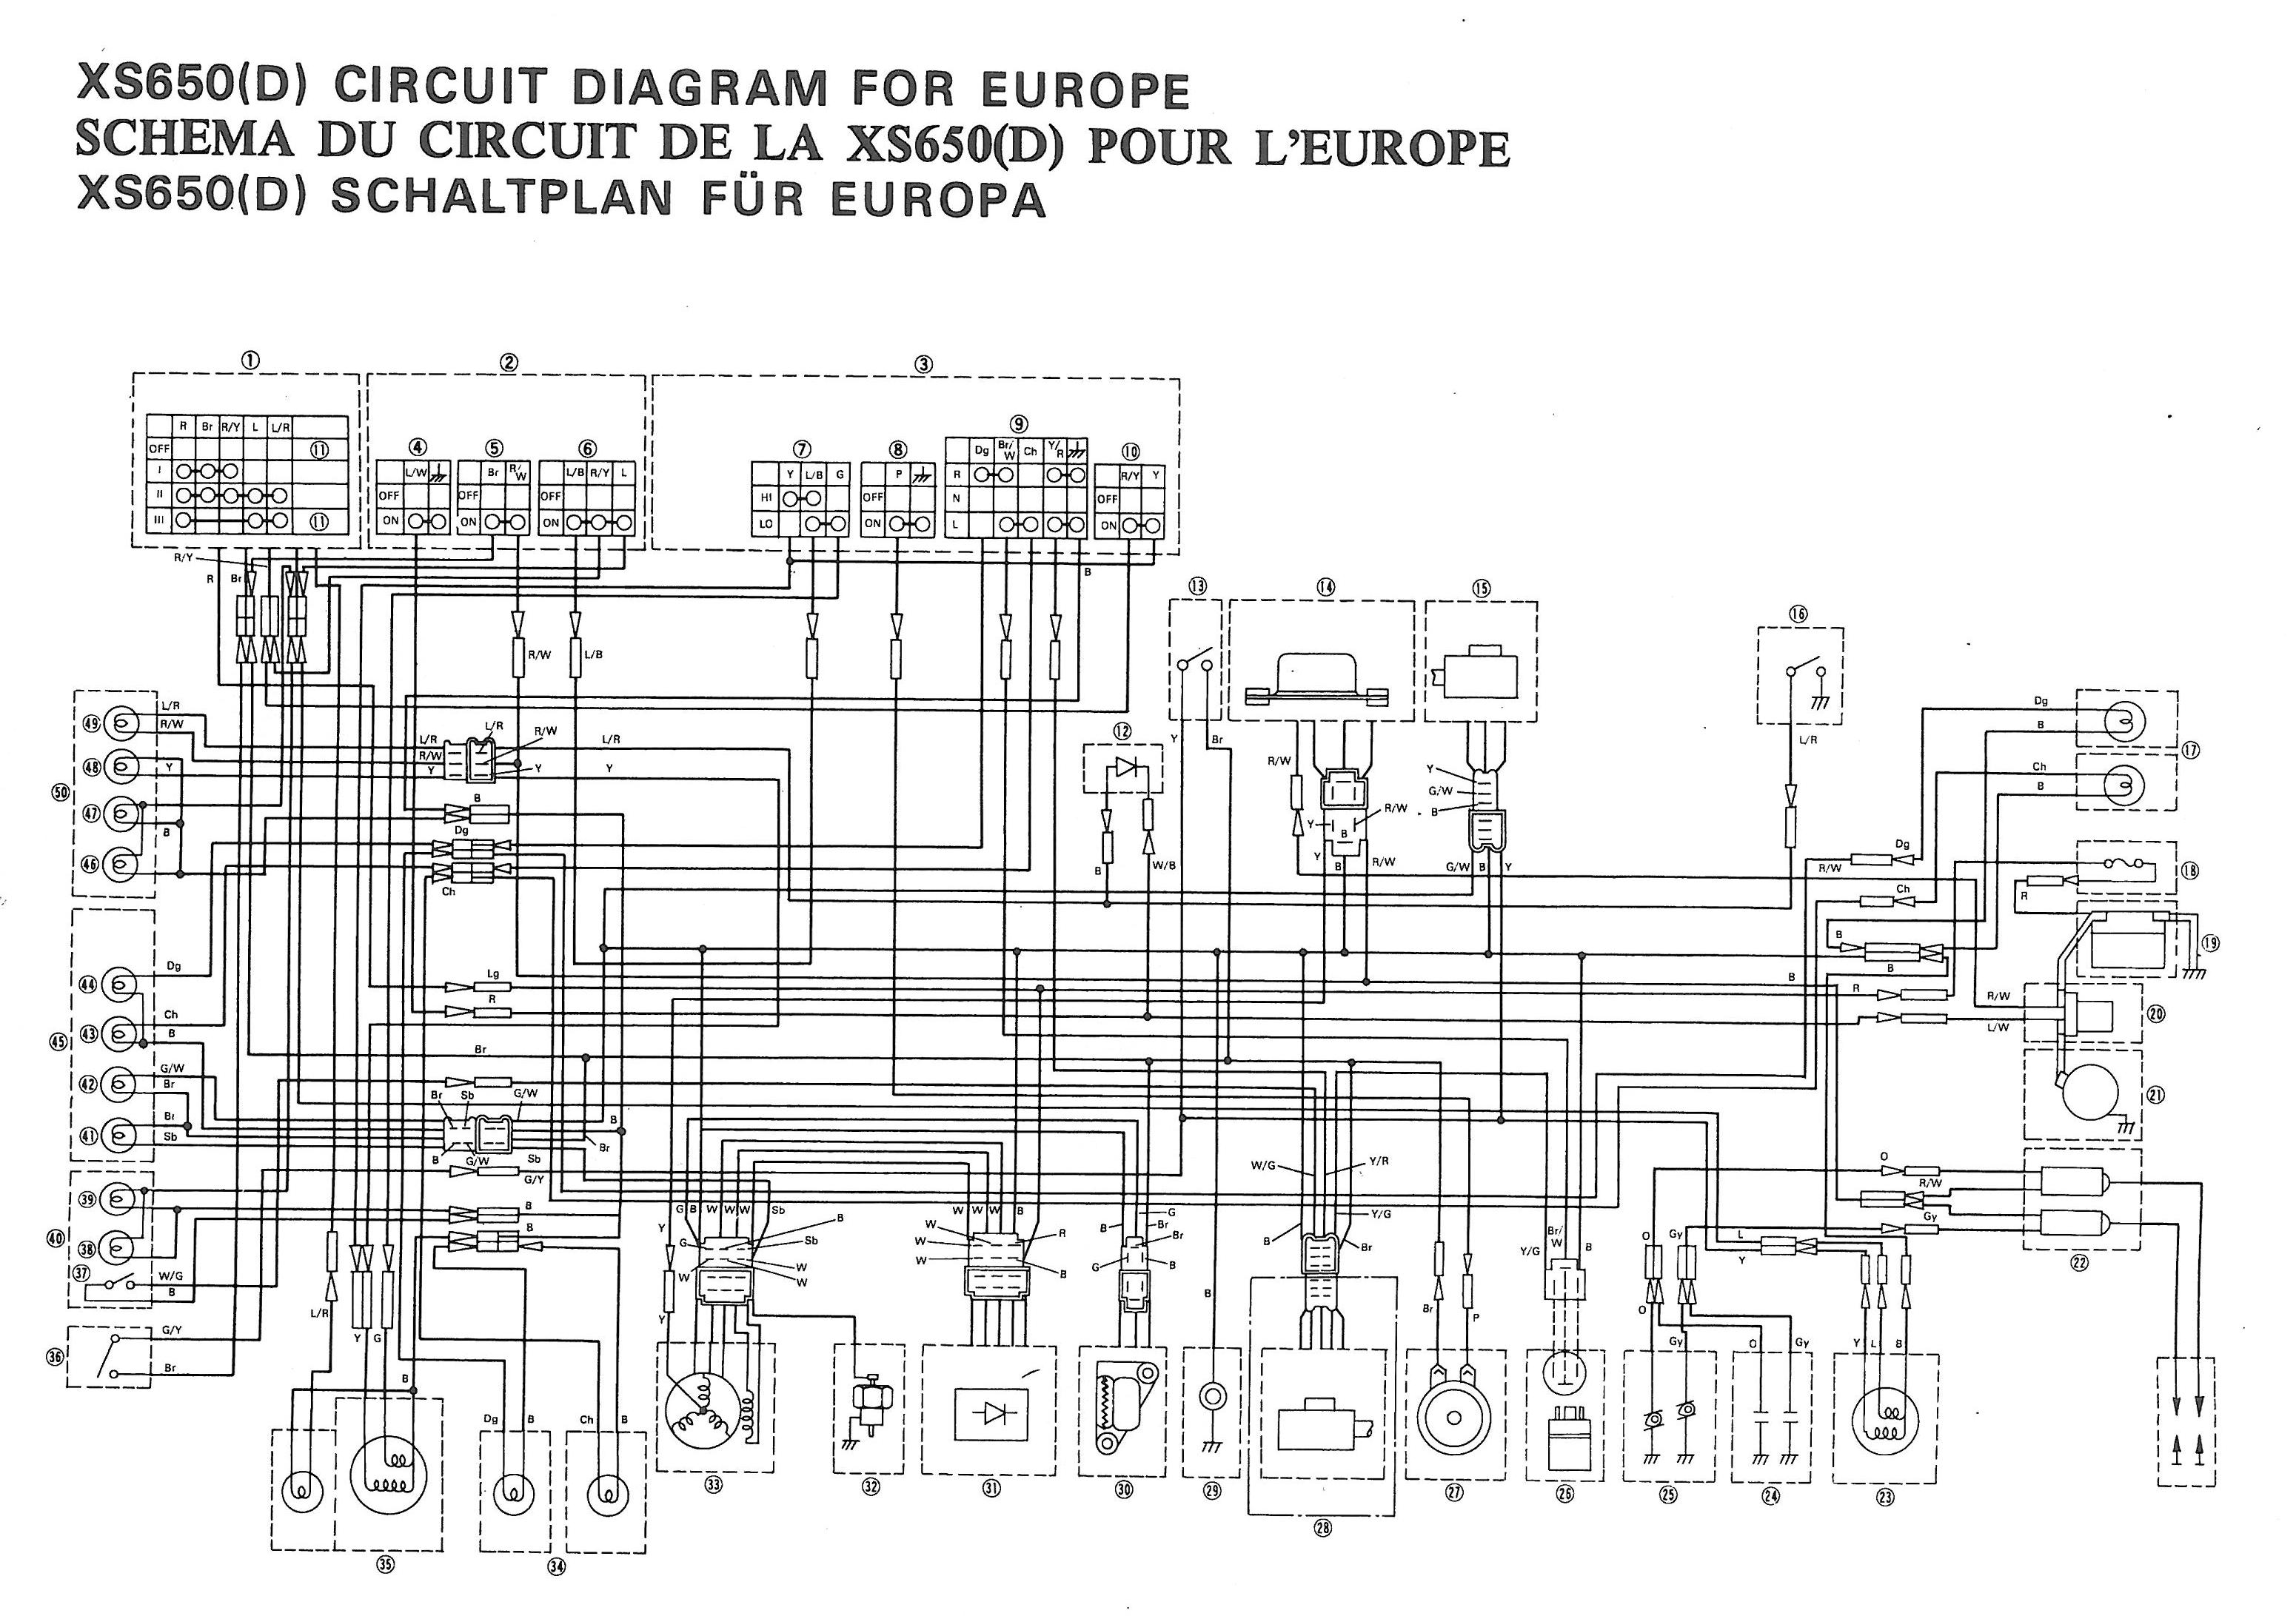 77 xs d wiring europe xs650 77 xs d wiring diagram thexscafe xs650 wiring diagram at gsmportal.co